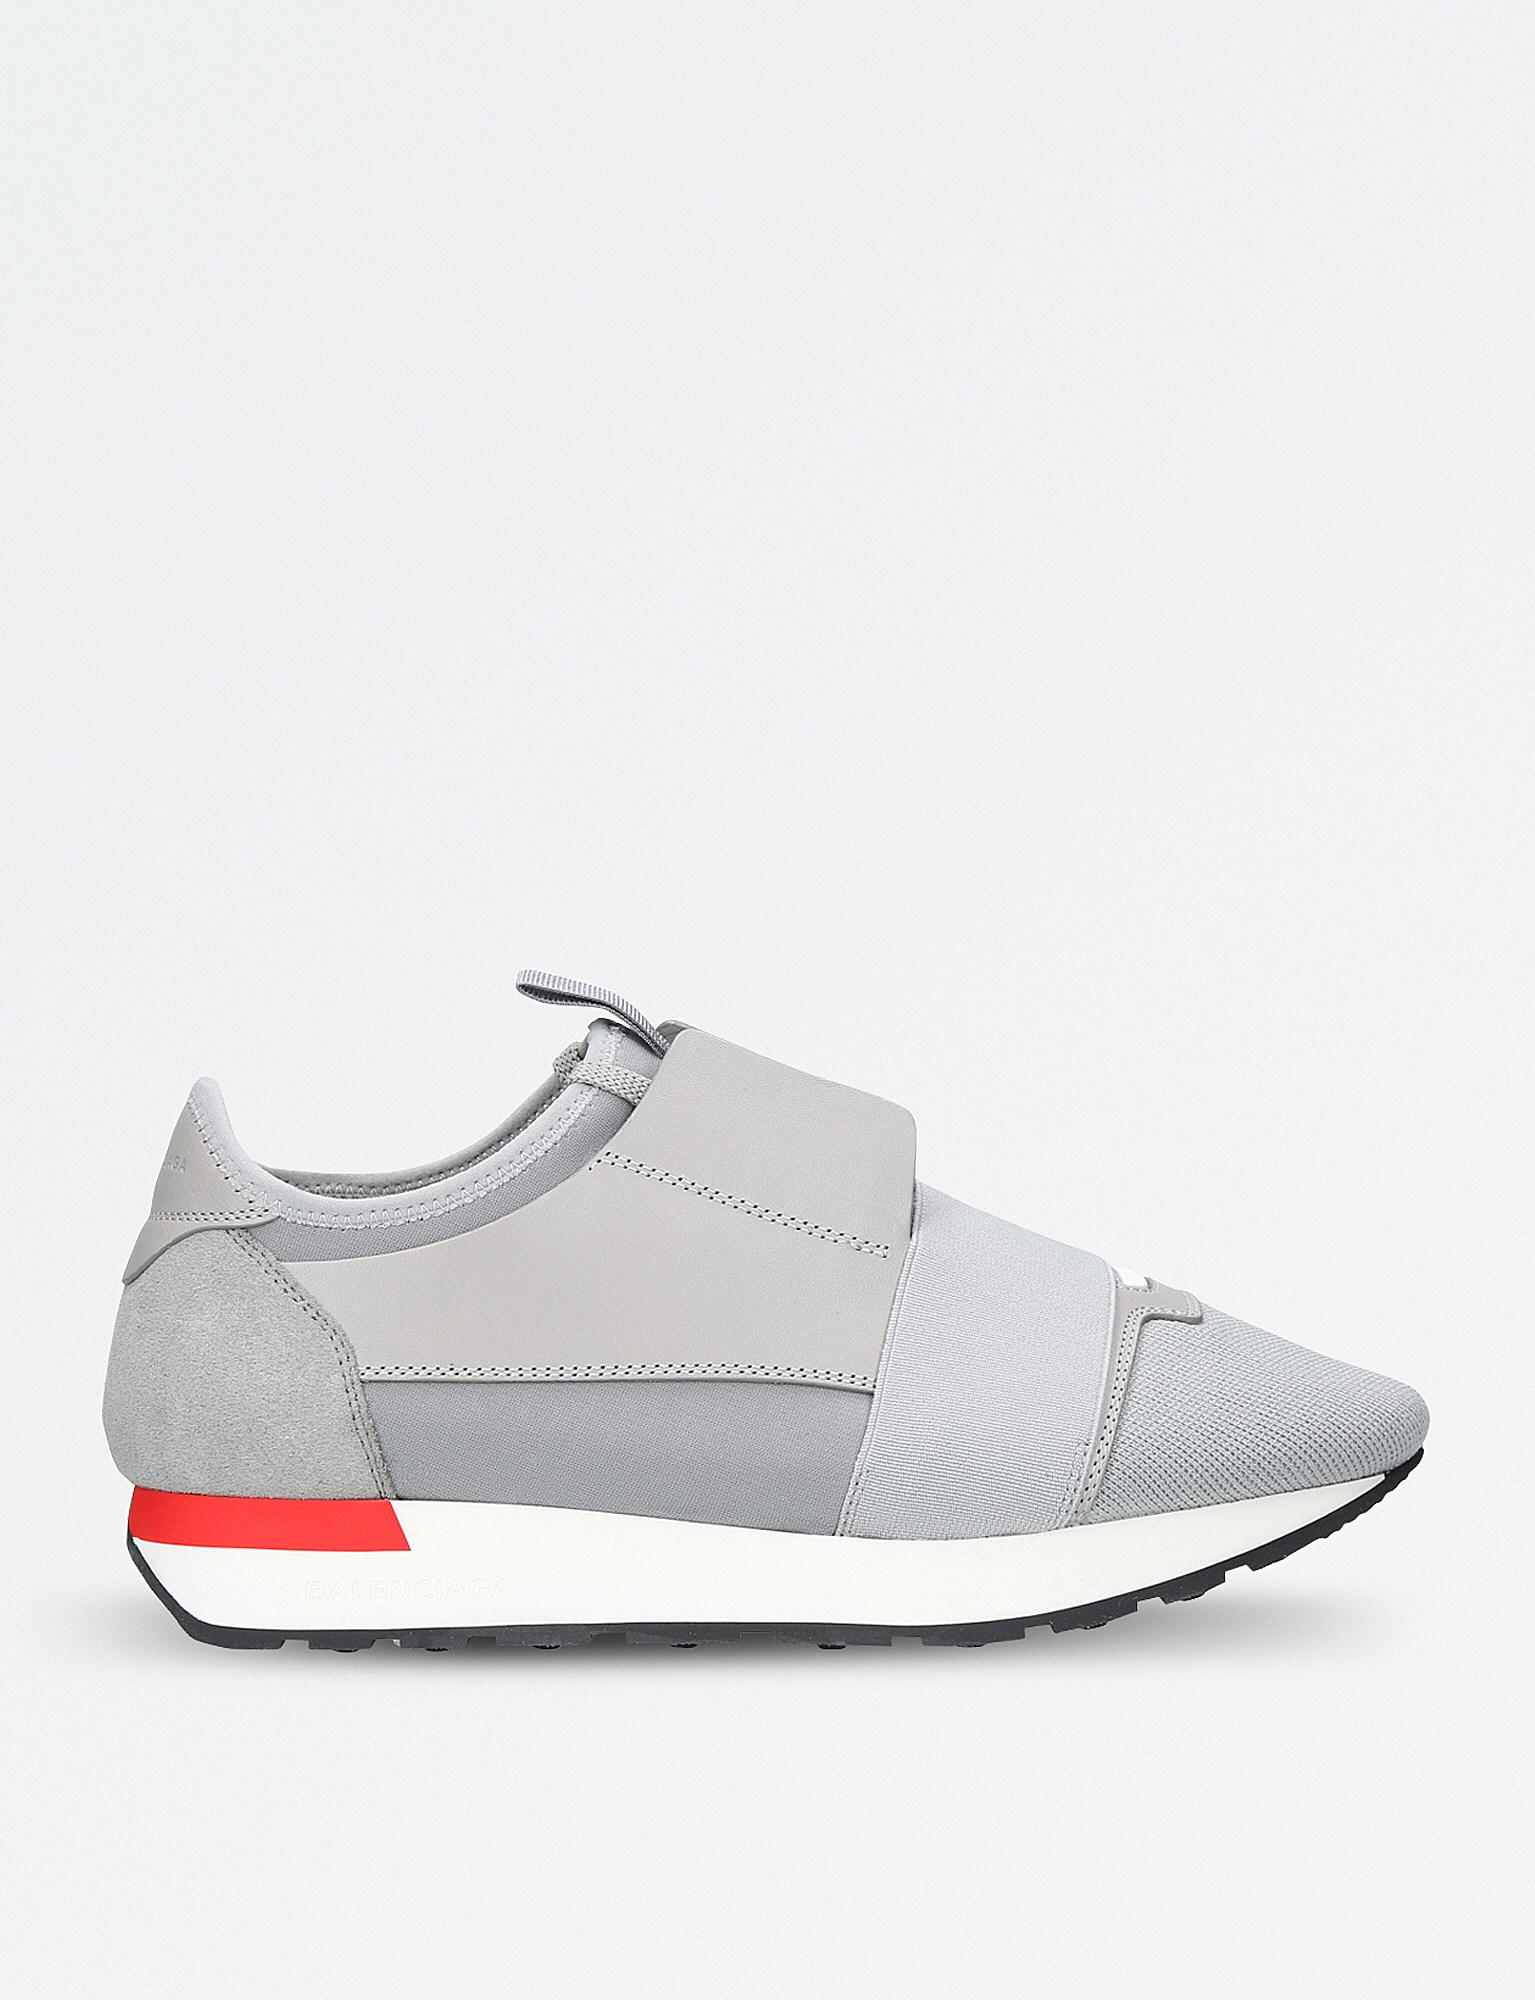 8f209d02b2e3 Balenciaga Race Runners Leather And Mesh Trainers in Gray for Men - Lyst